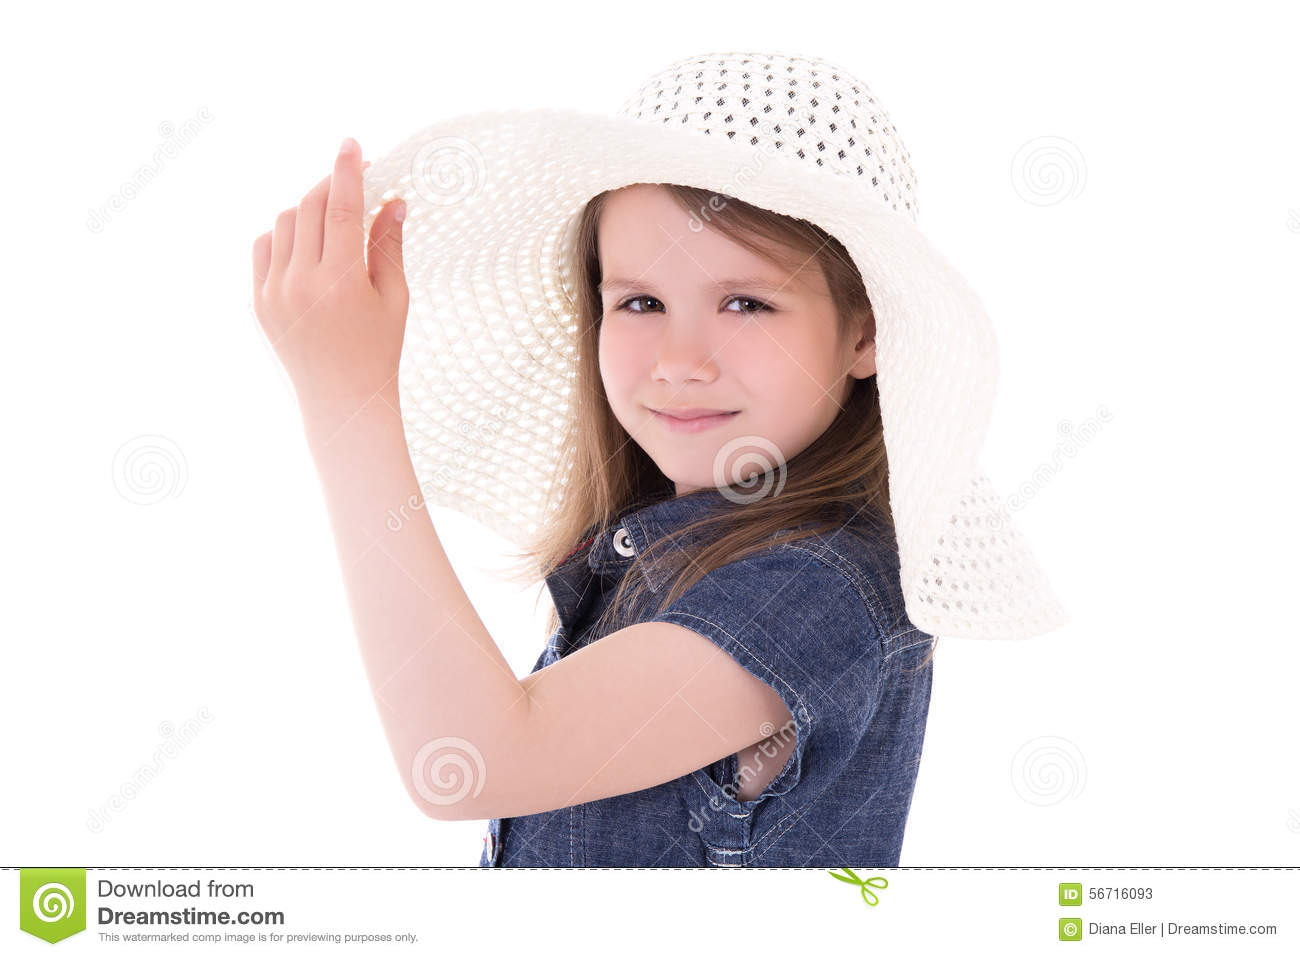 ae06592d240 Portrait Cute Little Girl Big Summer Hat Isolated White Stock Images -  Download 97 Royalty Free Photos